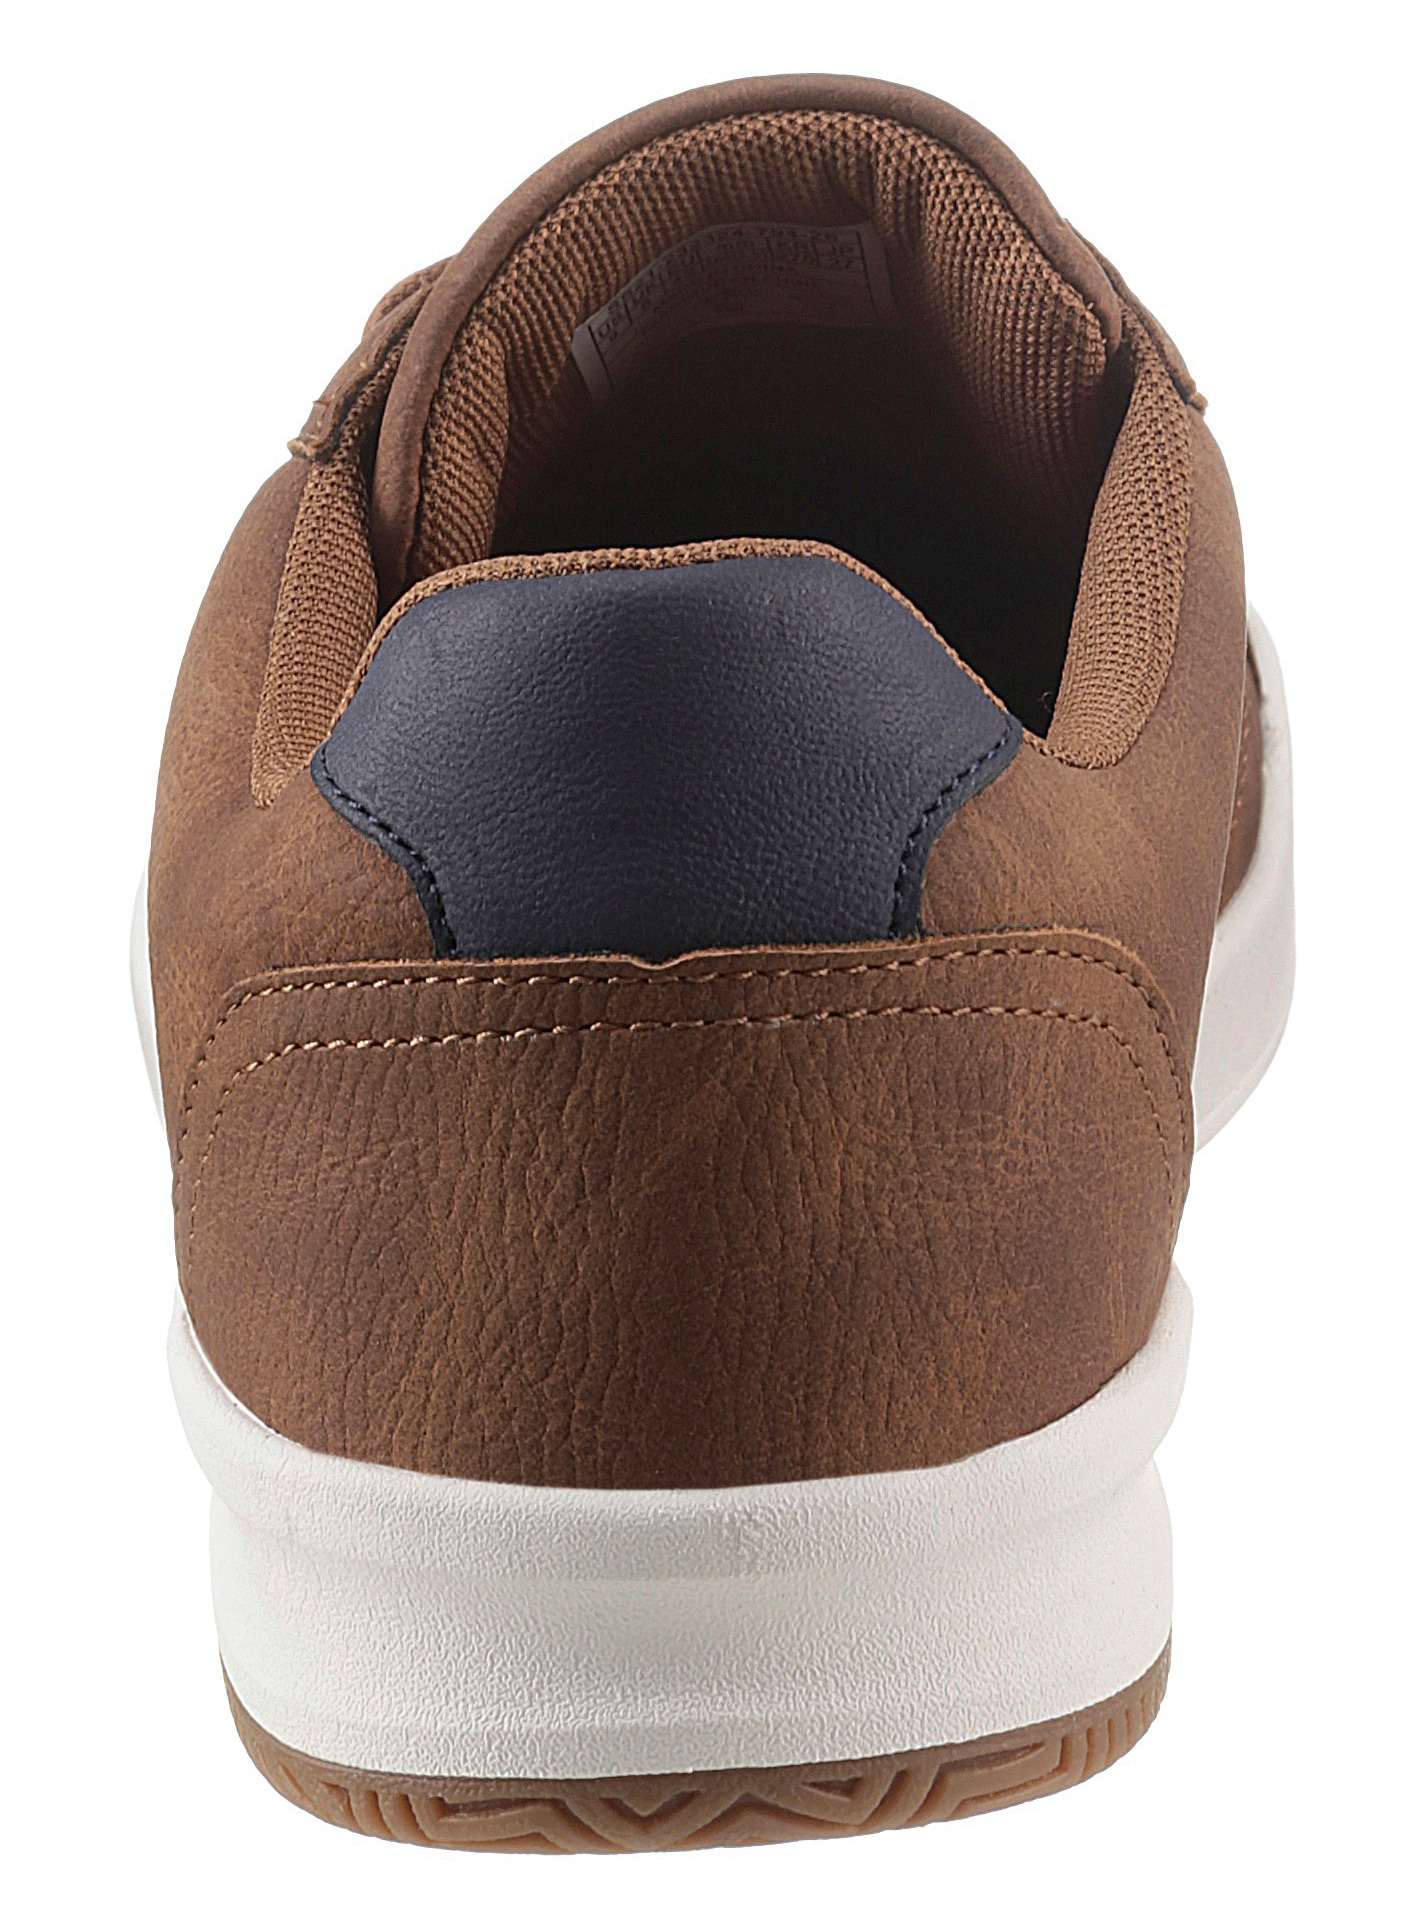 levis - Levi's Sneaker COGSWELL, mit Label